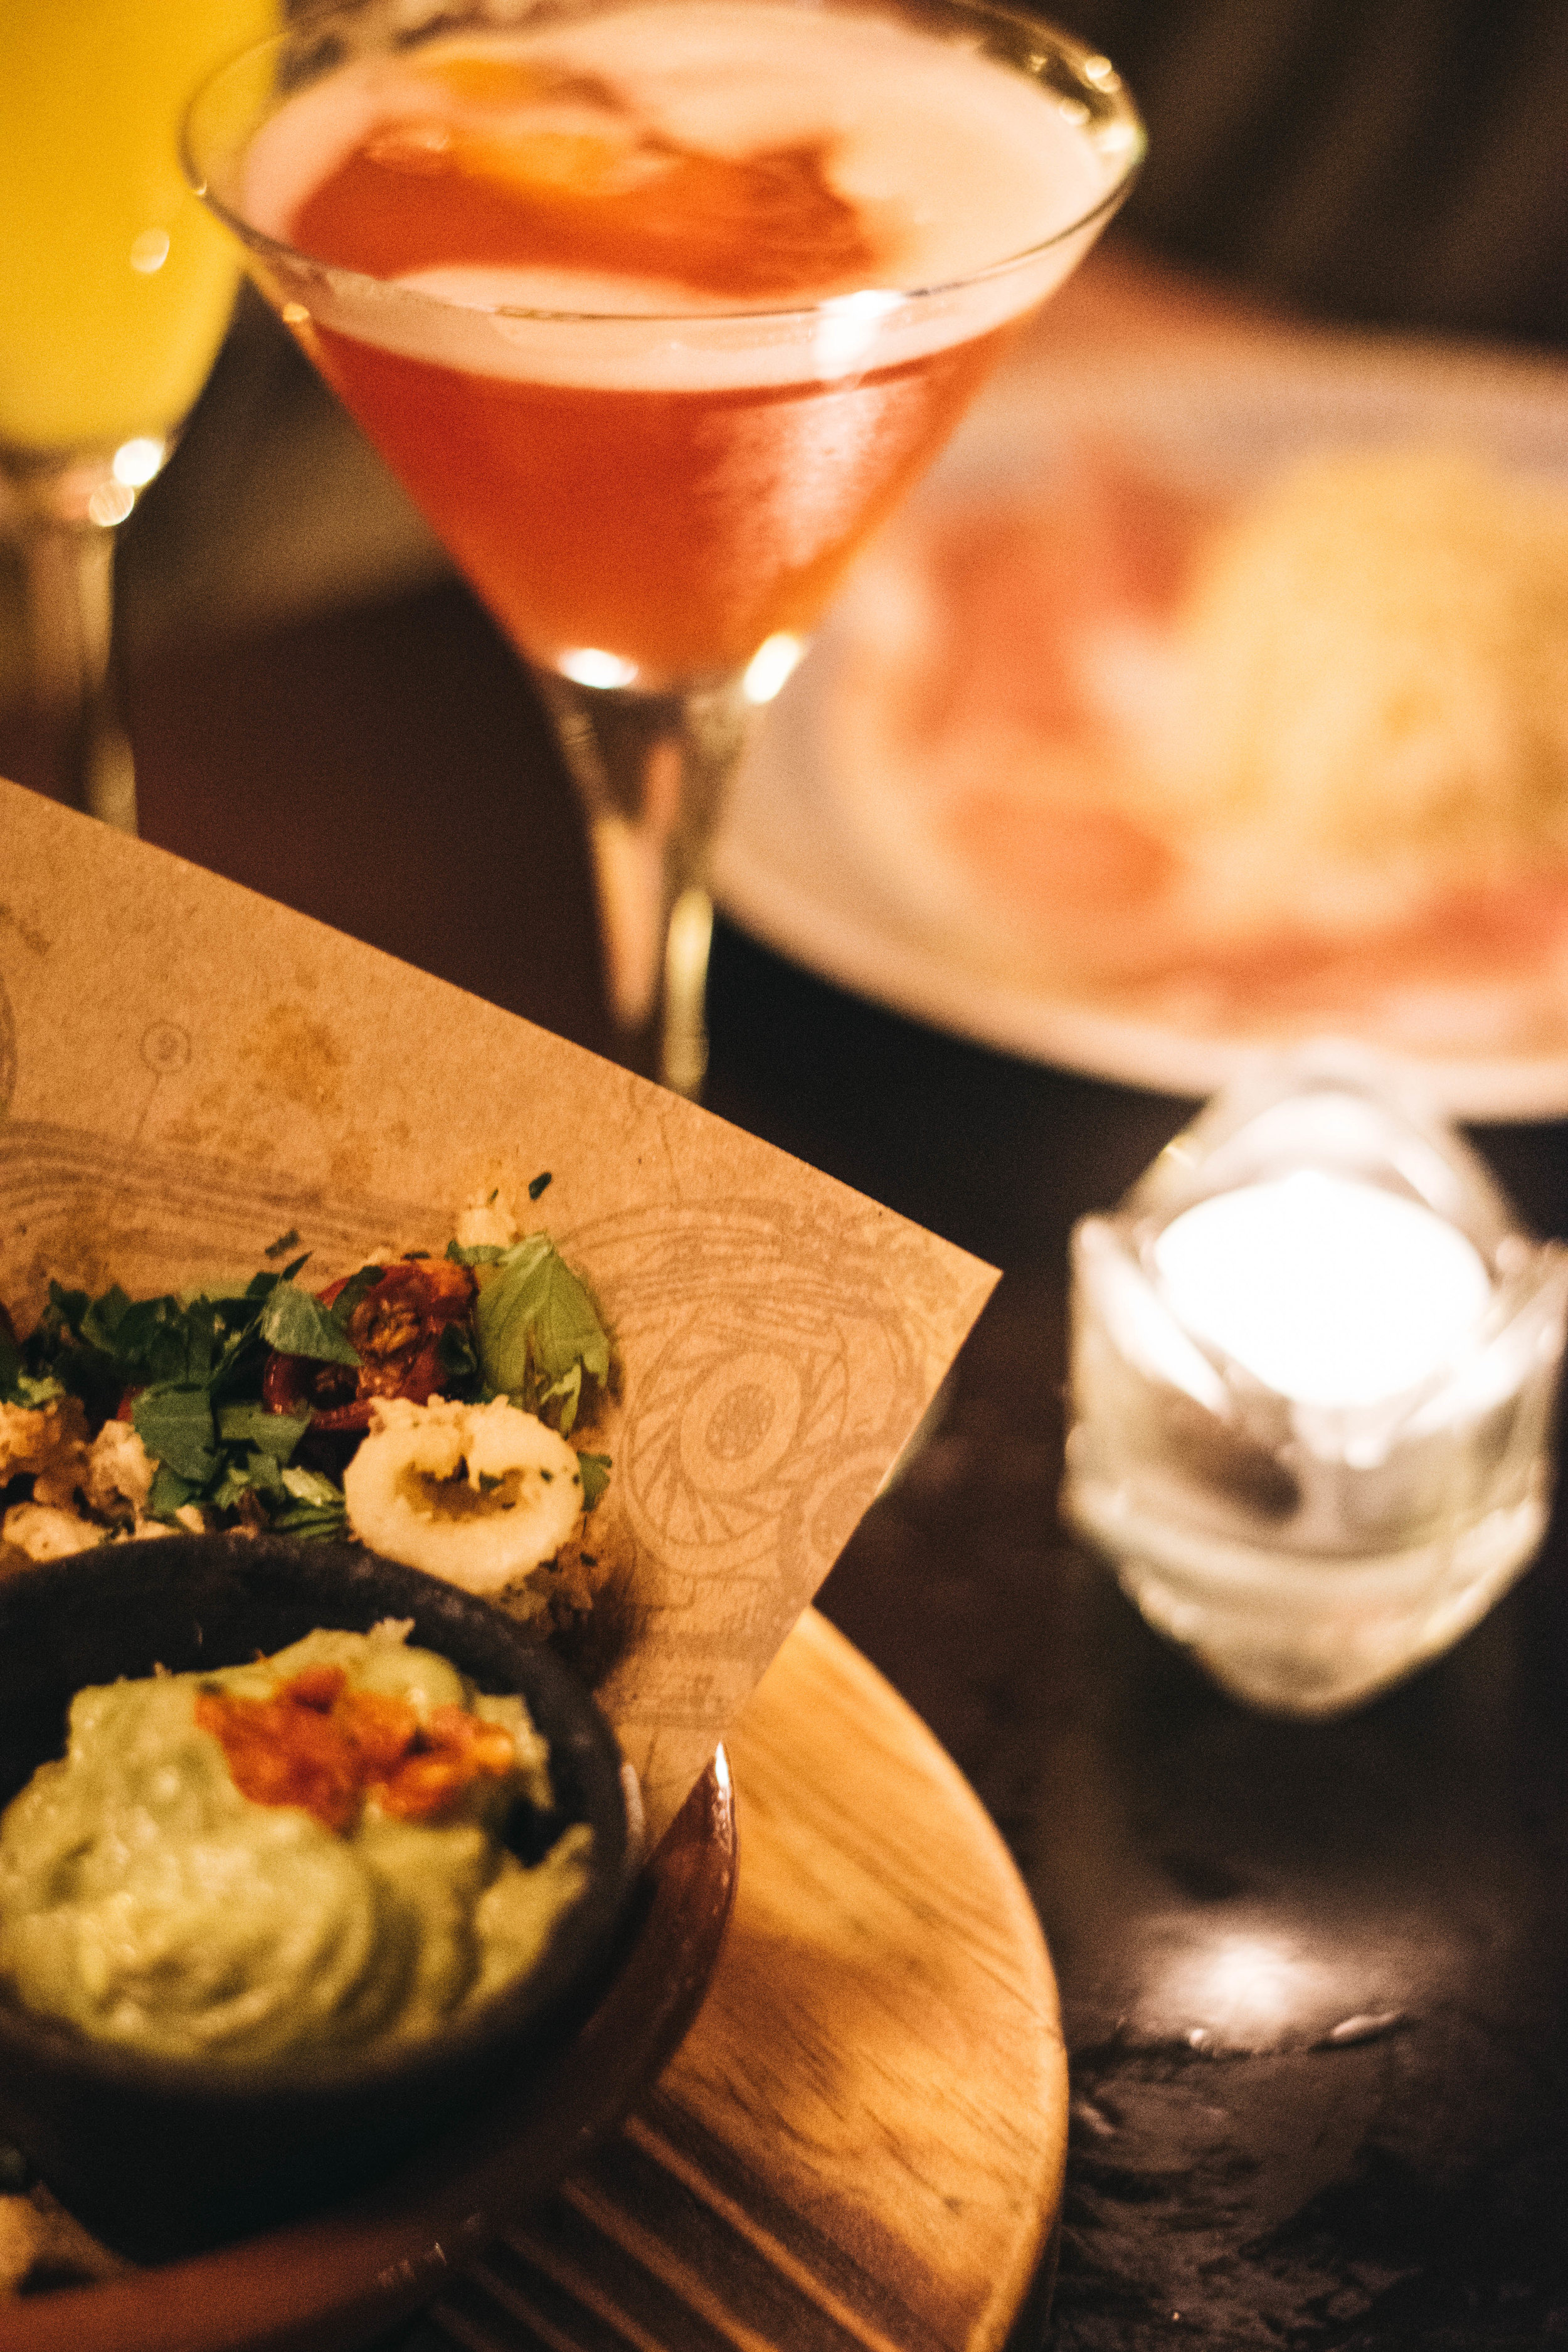 jamie's italian manchester review. jamie's italian quick and easy menu. Manchester, UK beauty and lifestyle blog. UK Beauty Blog. Manchester Beauty blog. UK Lifestyle blog. Manchester lifestyle blog. UK Fashion Blog. Manchester Fashion Blog. Ellie Dickinson. Ellie Grace. Ellie Grace Dickinson.